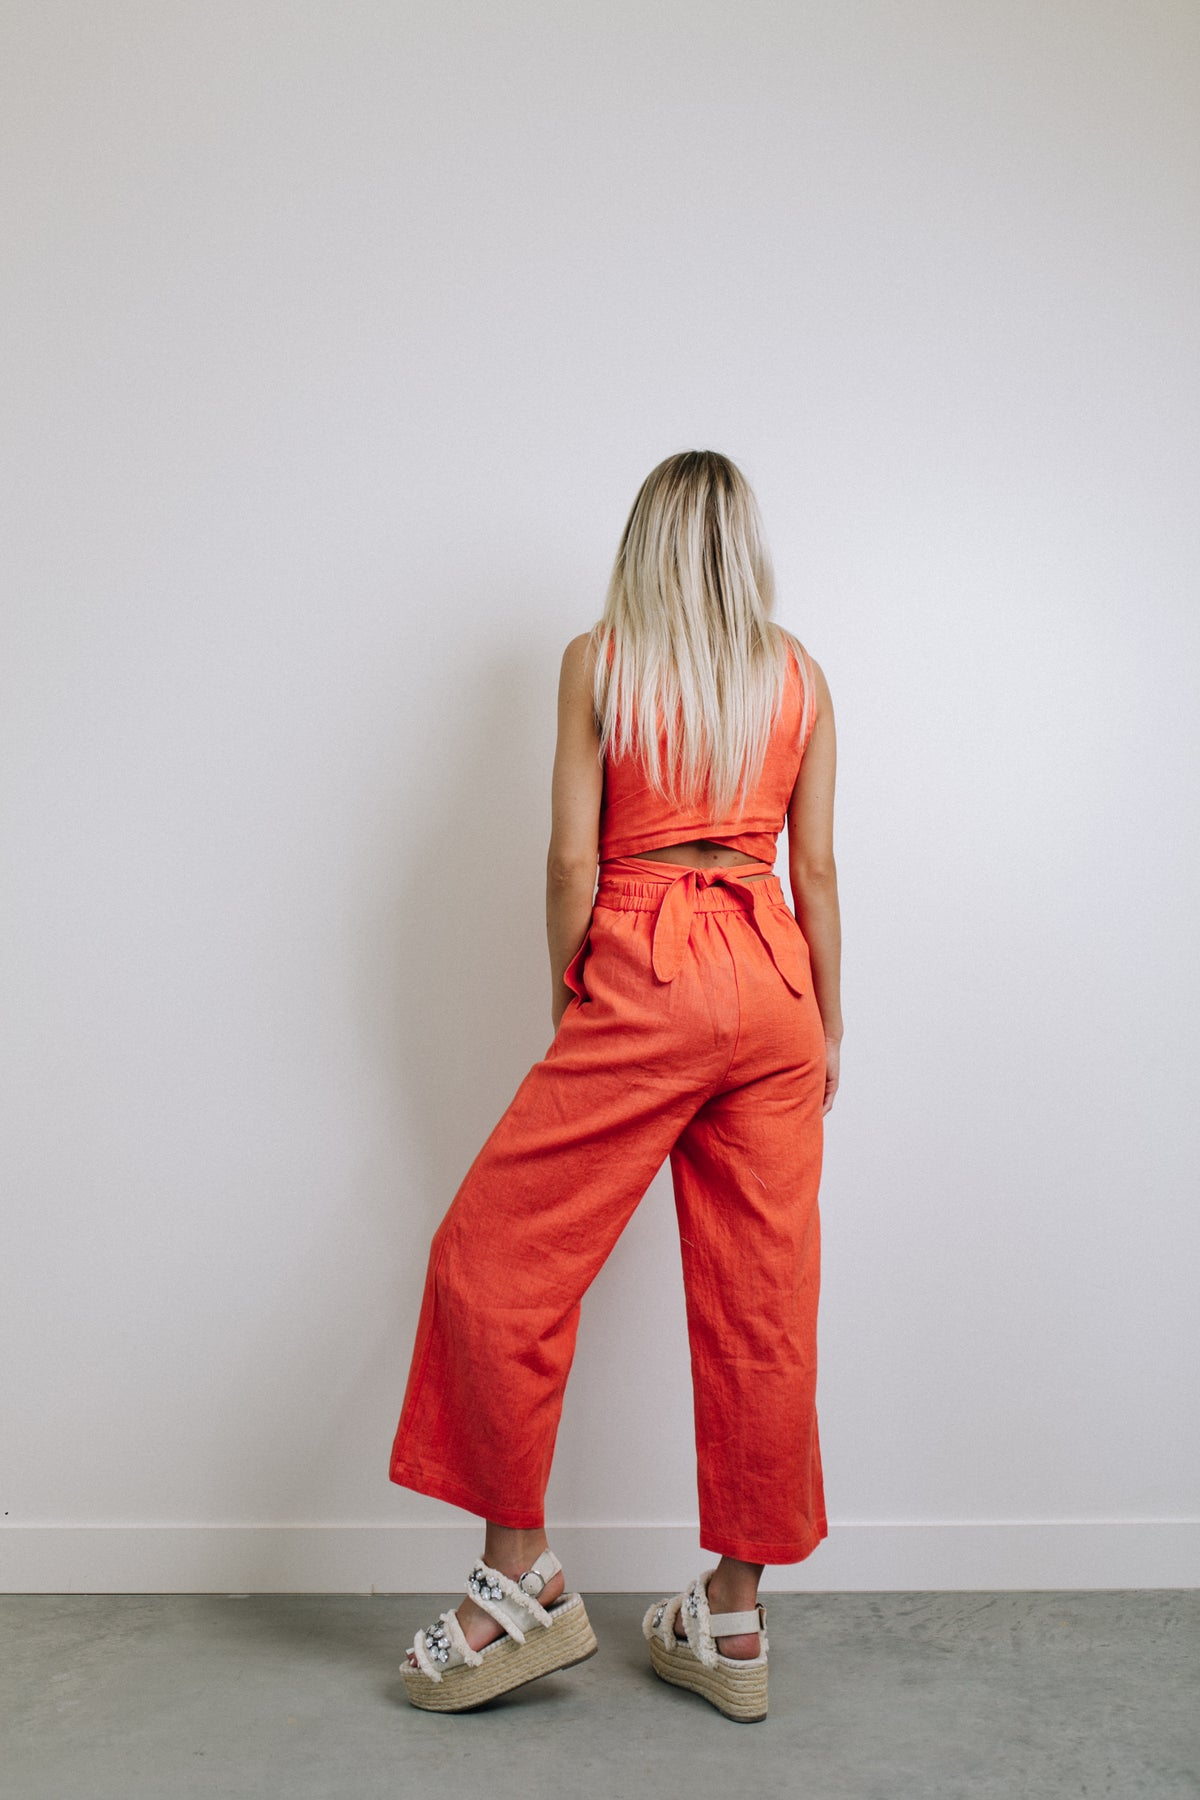 How We Do Jumpsuit